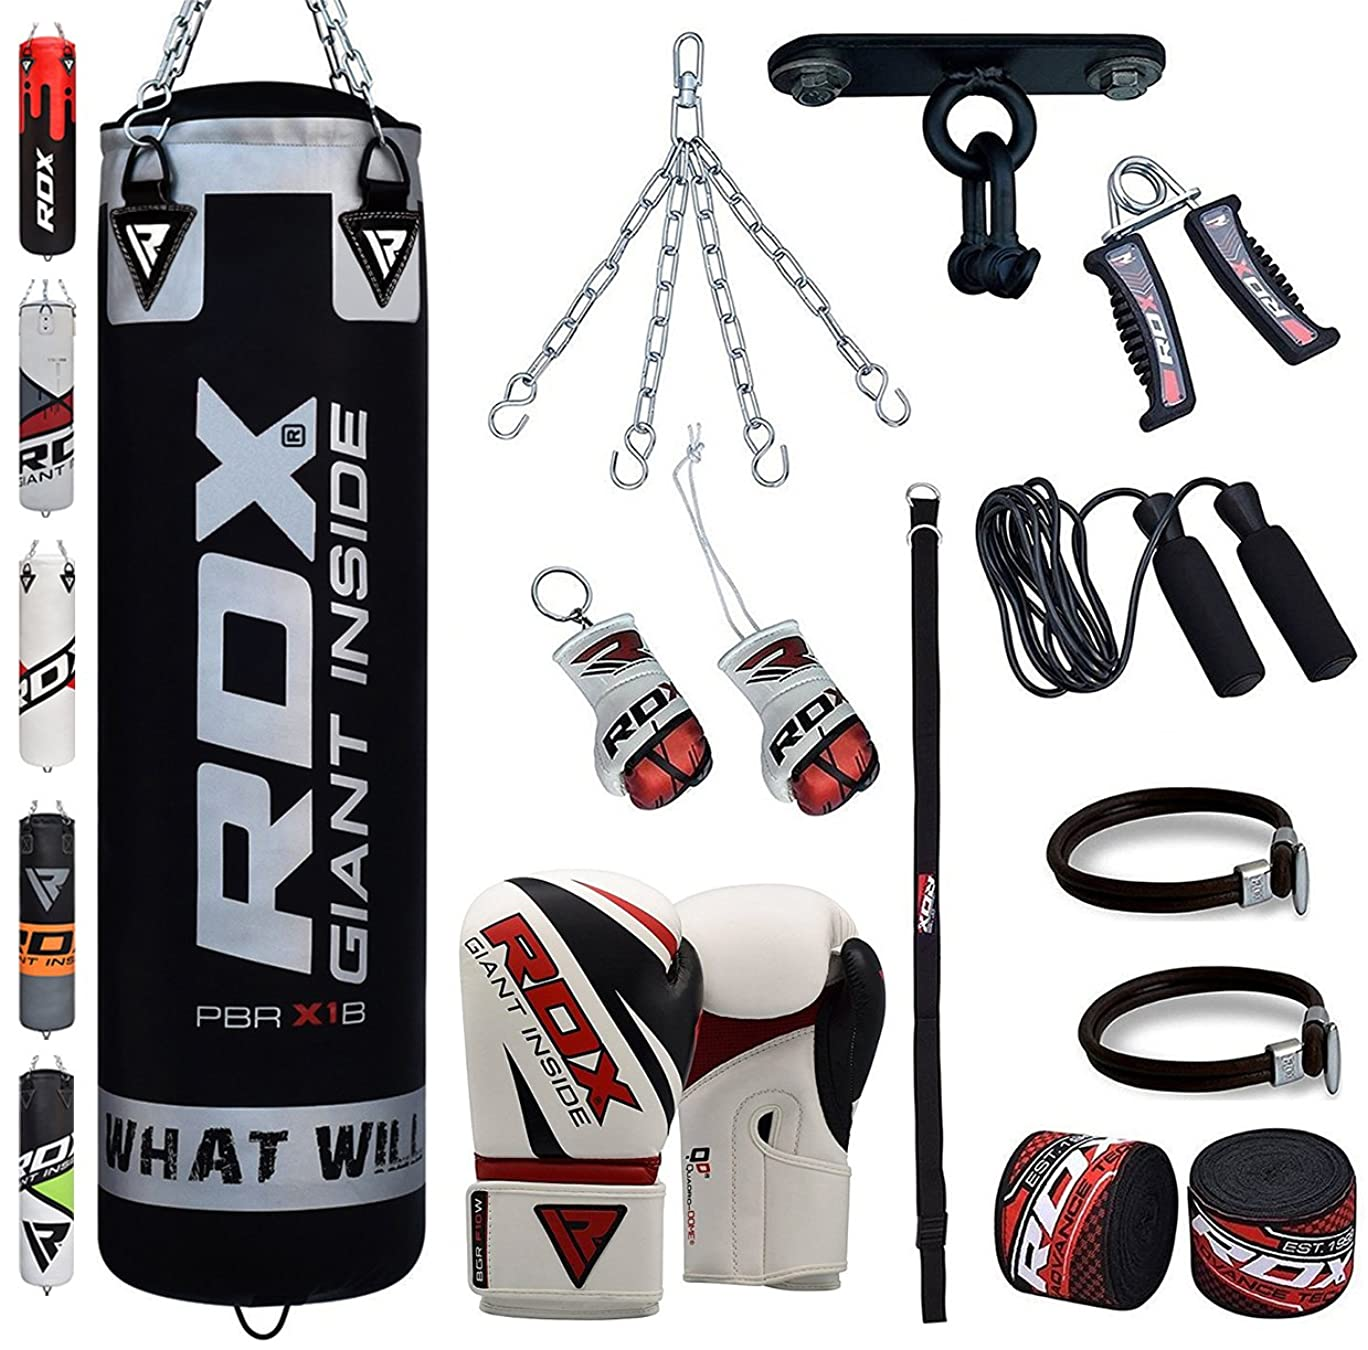 RDX Punch Bag Boxing Set 4FT 5FT Filled Heavy Gloves Ceiling Hook Chains Training MMA 13PC Punching Bags